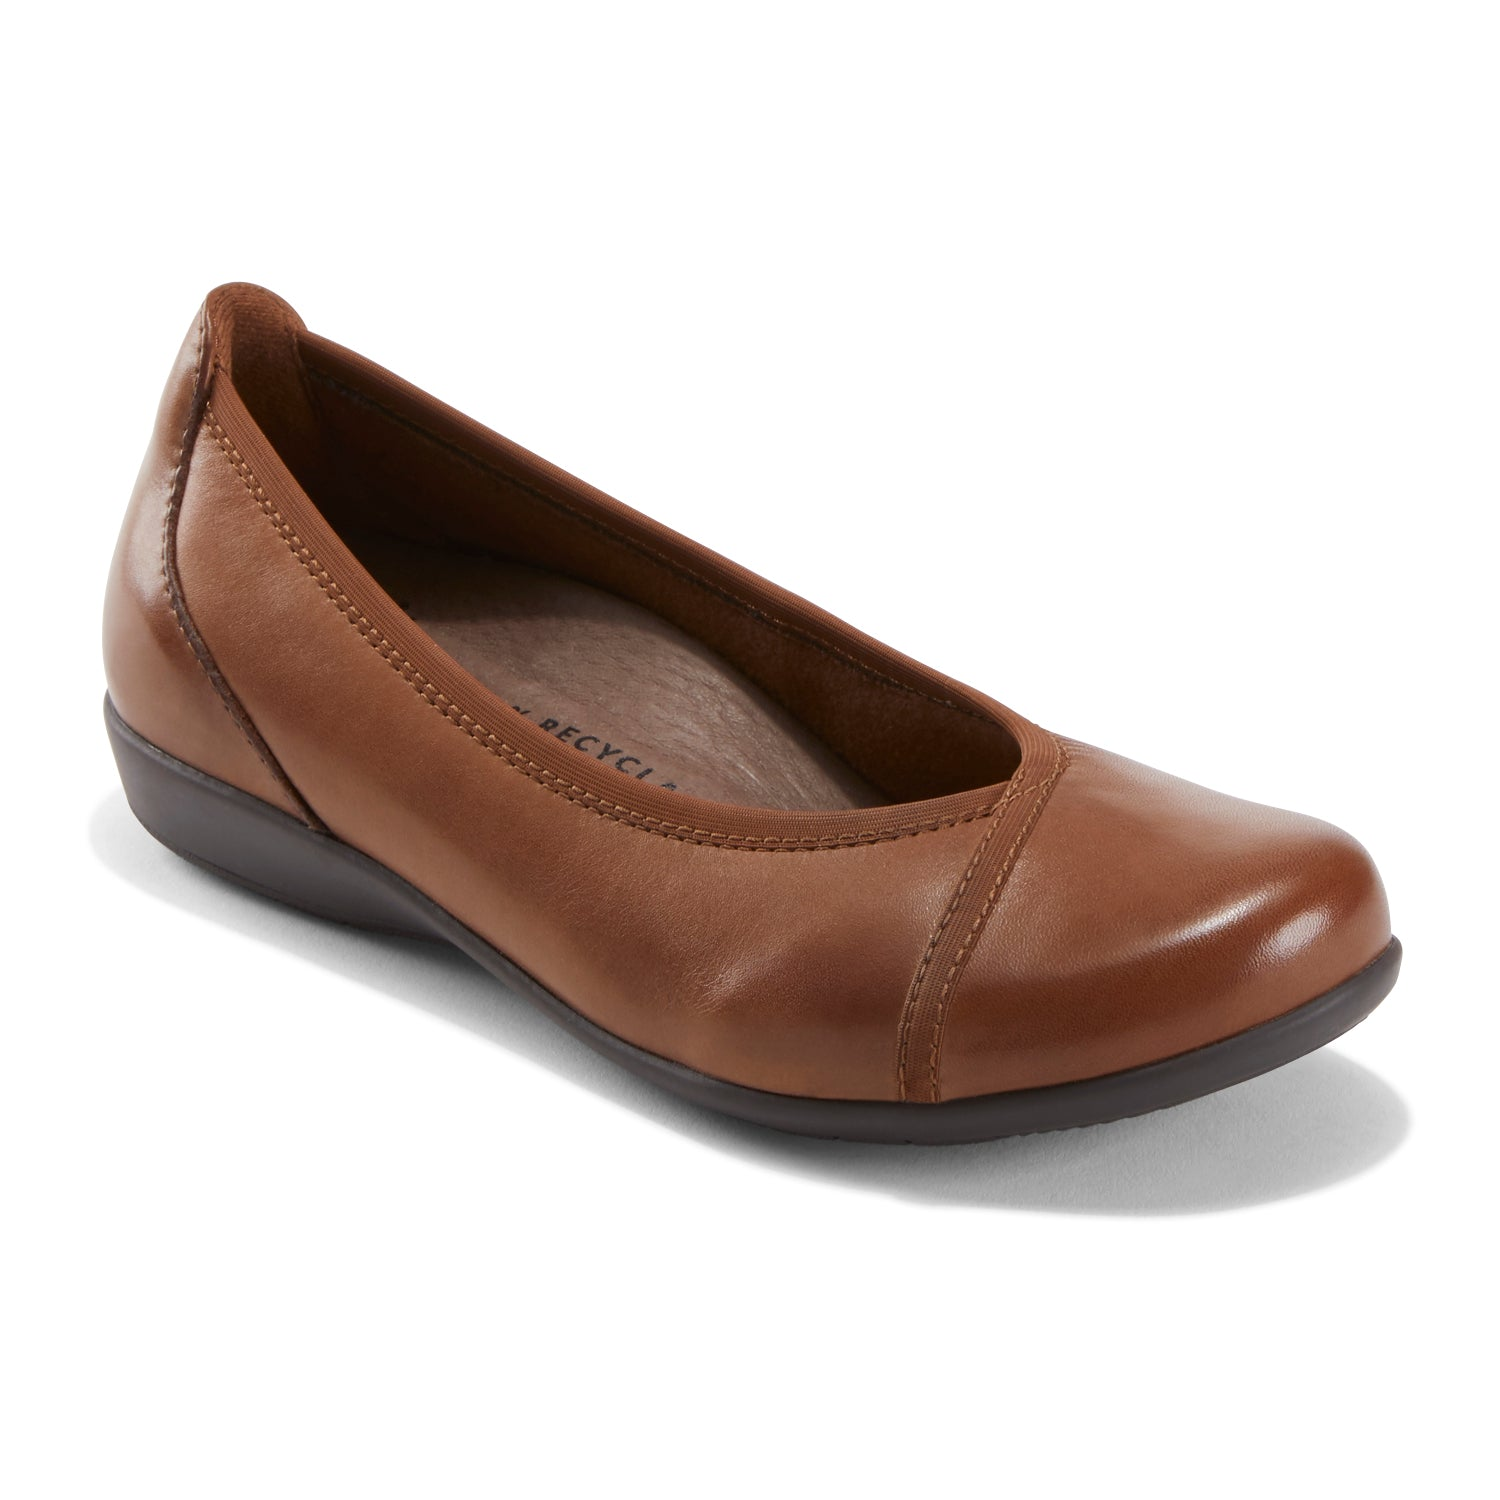 Elevated simplicity turns the classic ballet flat into an essential everyday style. It\\\'s also crafted with eco sensitive materials and designed to make you feel spectacular as you go about your day.